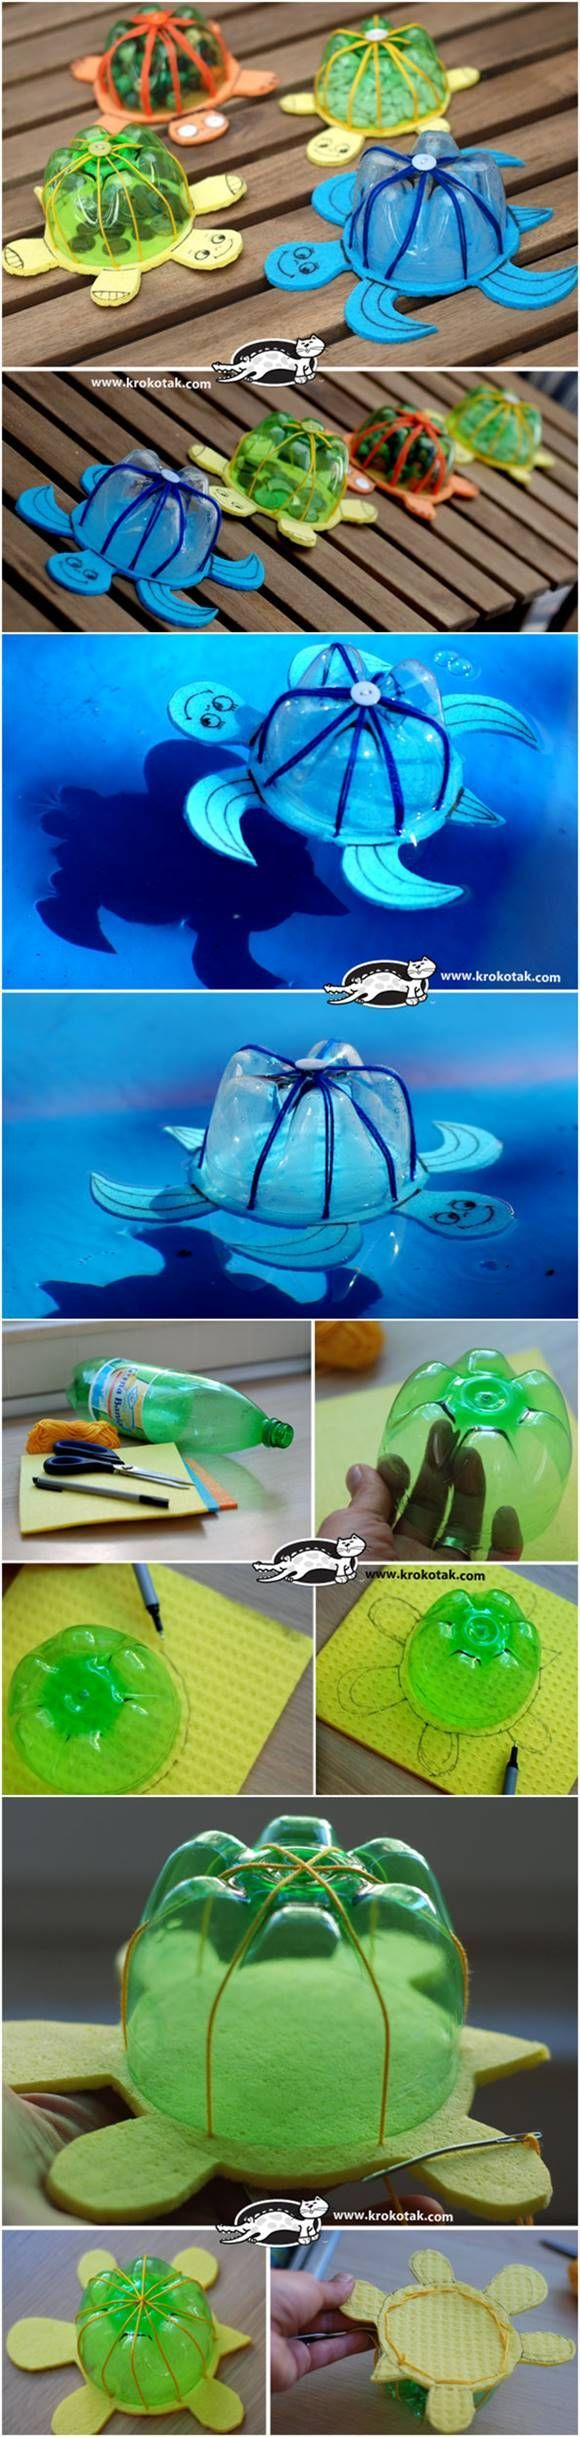 Best 25 recycled projects kids ideas on pinterest for Bottle decoration ideas kids